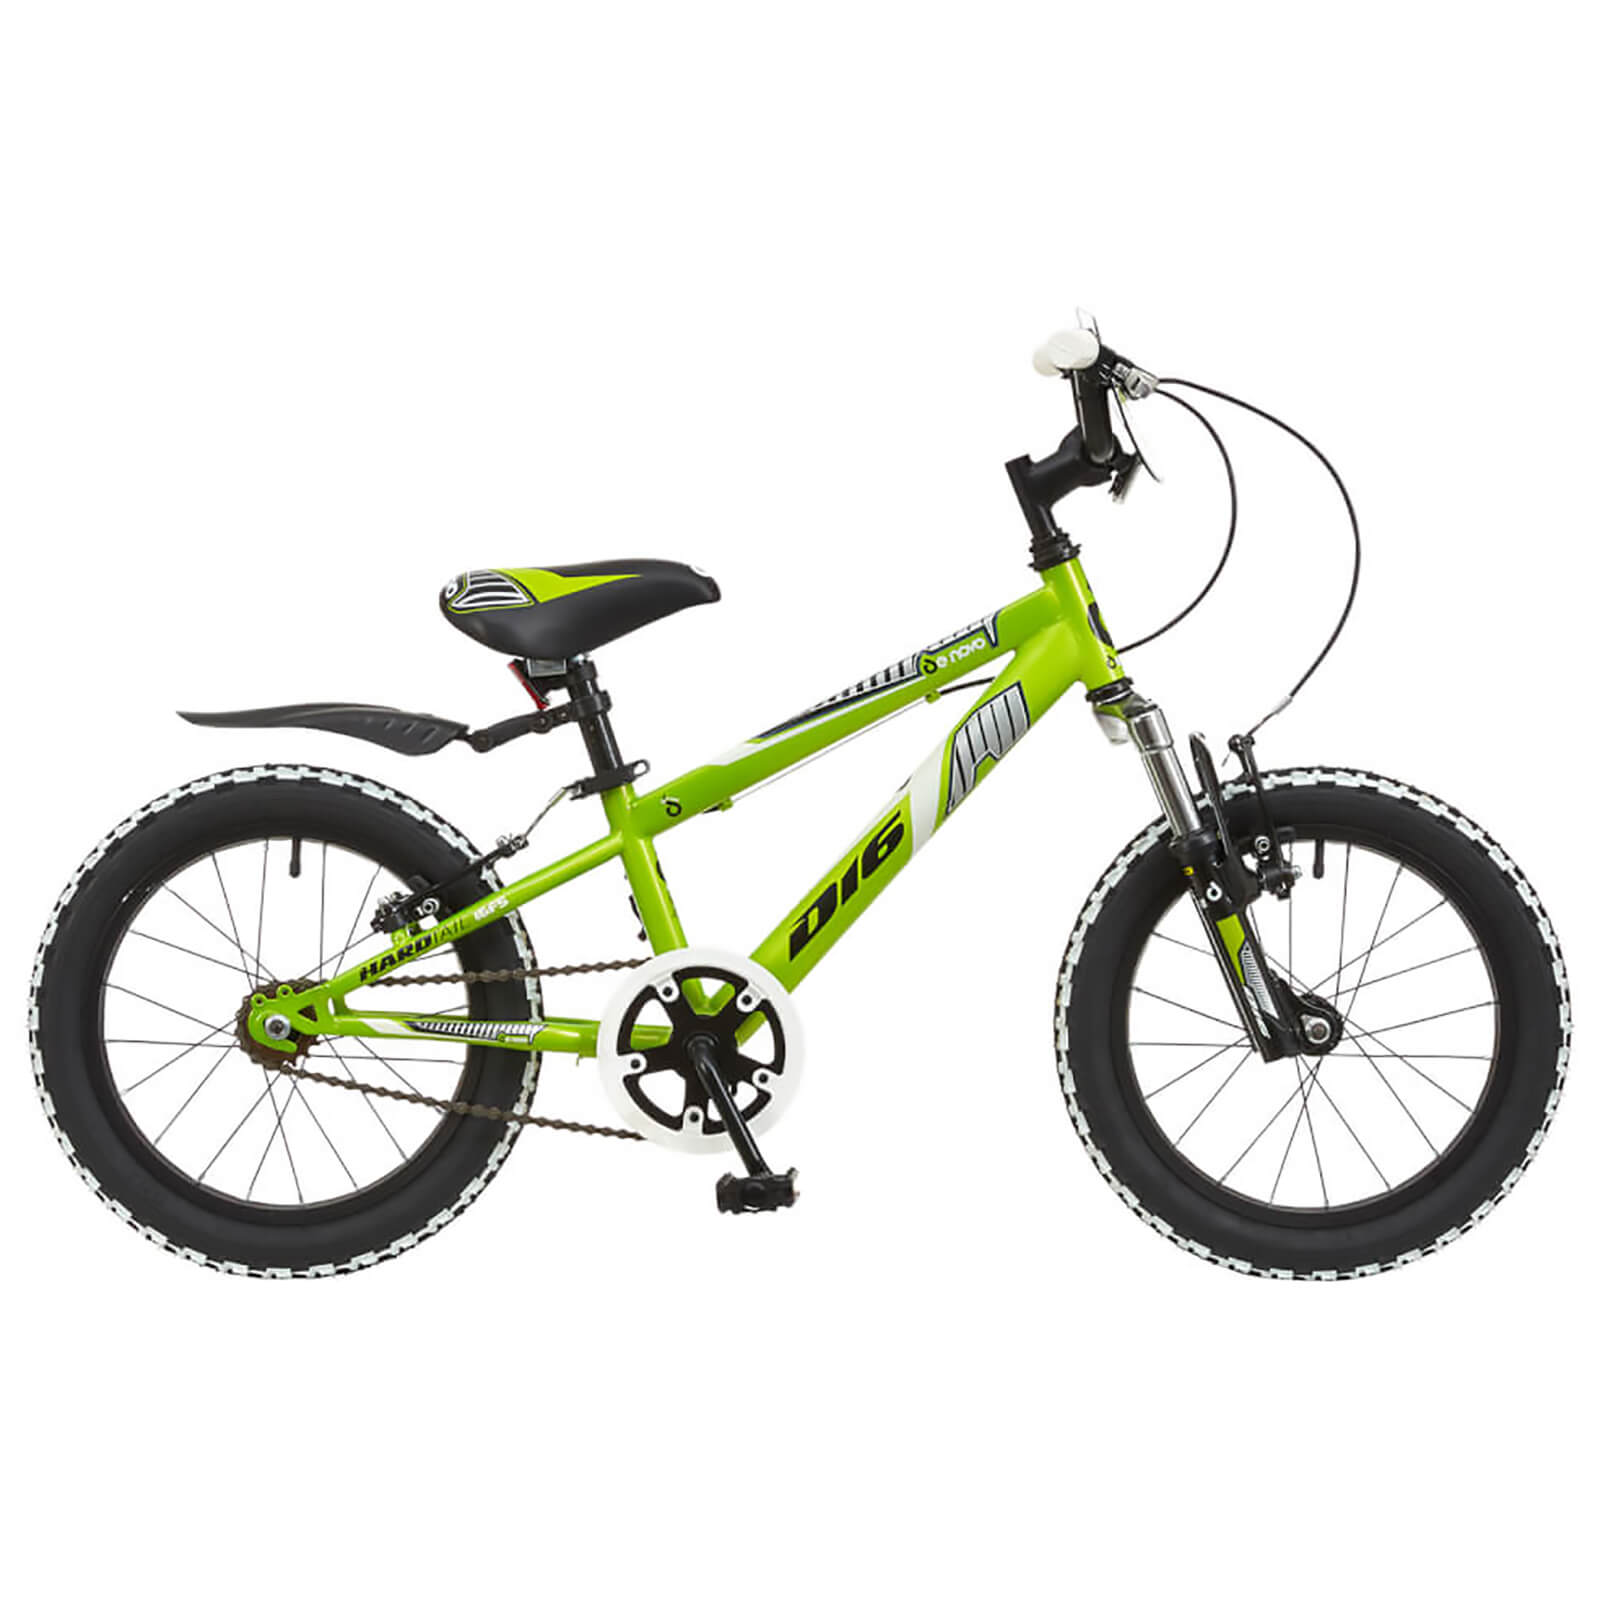 "Denovo Boys Suspension Bike - 16"" Wheel"